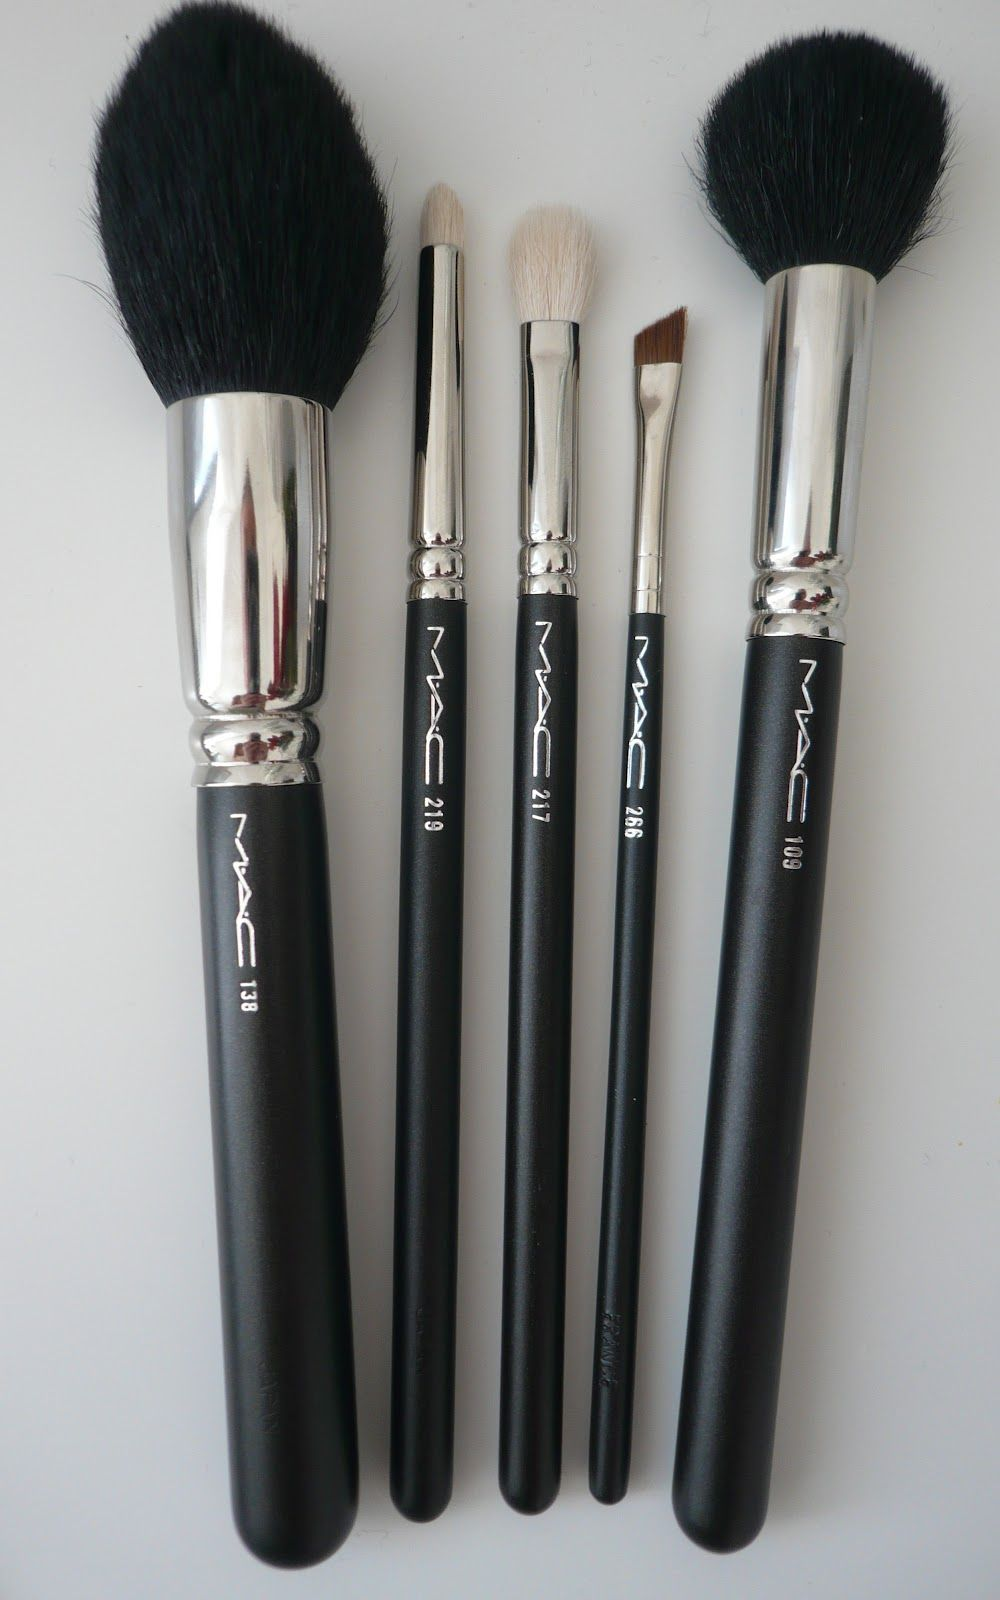 These Are The Best Makeup Brushes Ever!